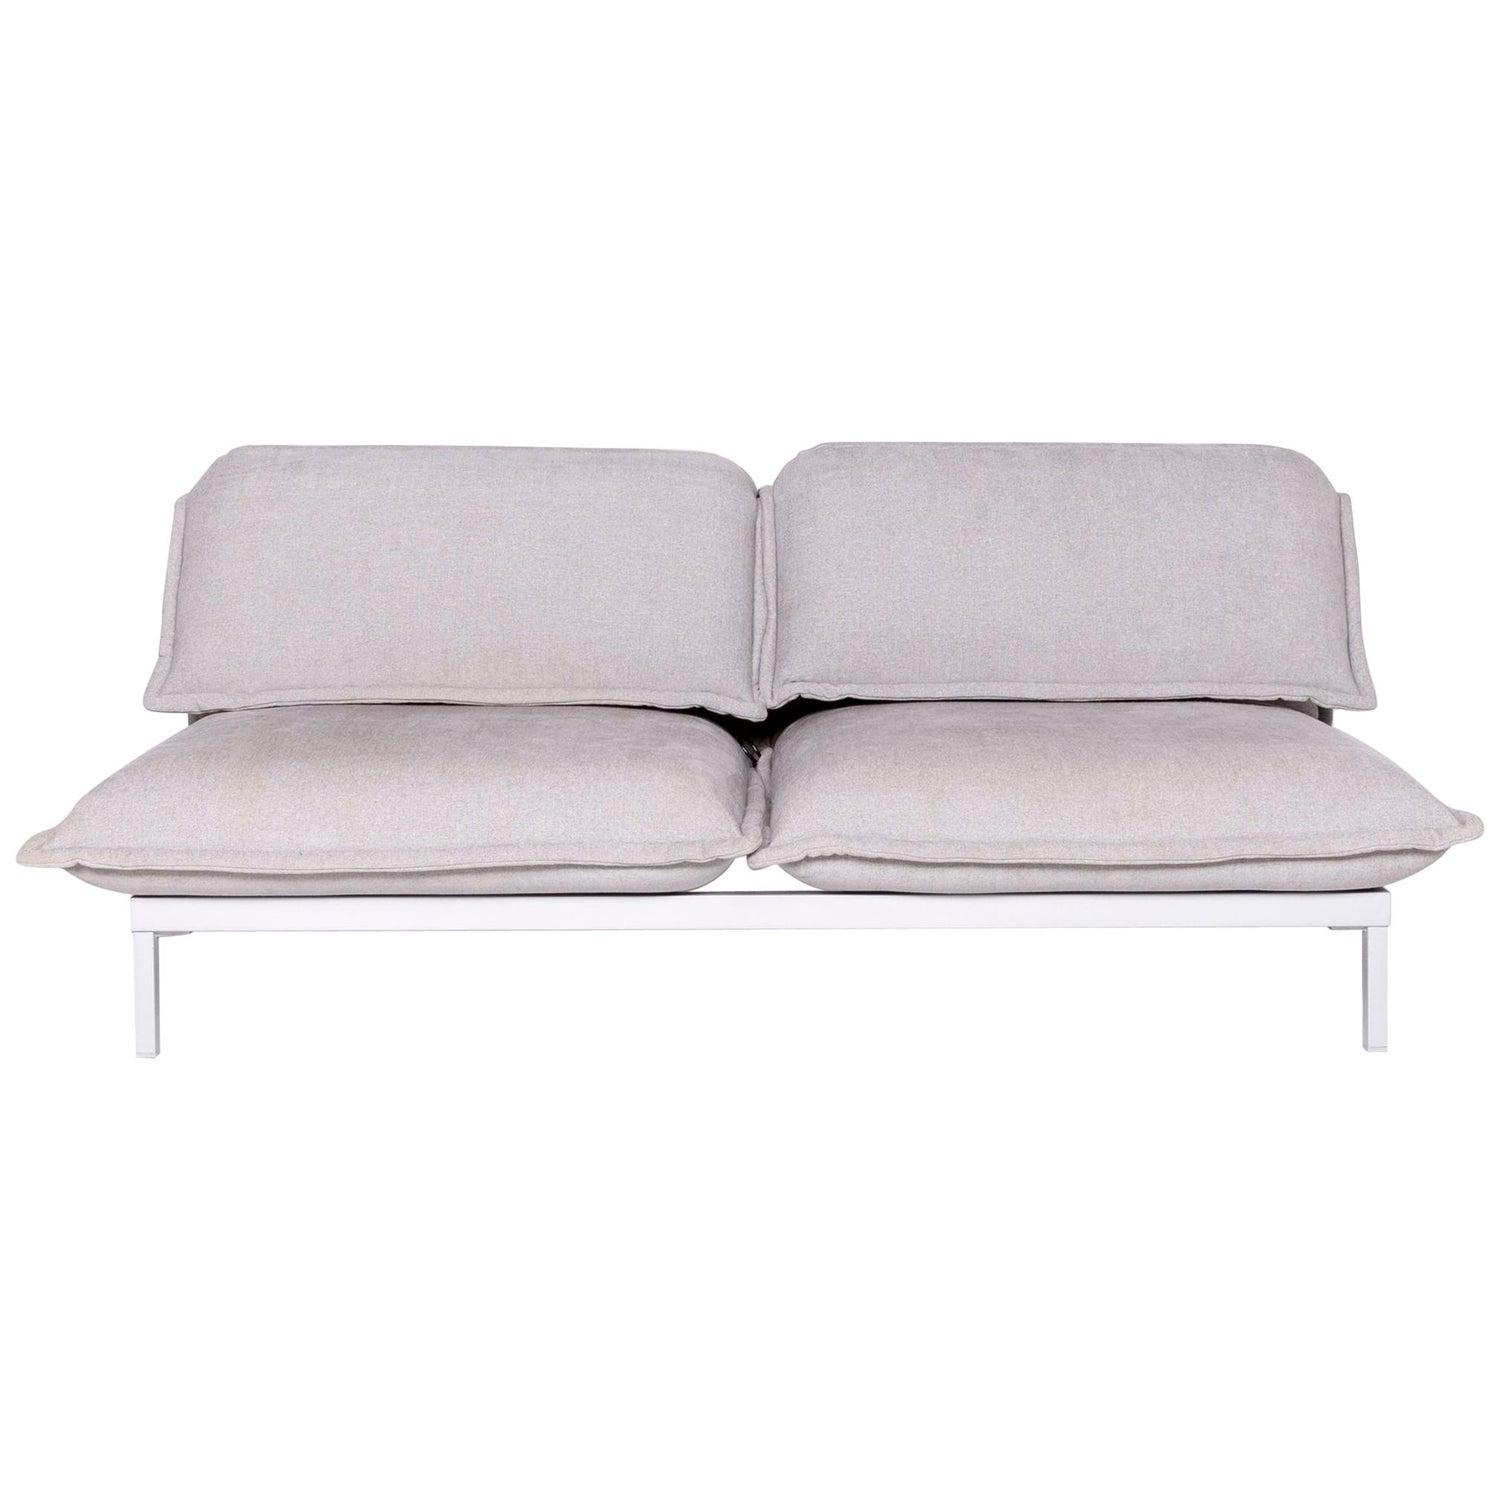 Astounding Rolf Benz Nova Designer Fabric Sofa Gray Genuine Leather Couch Function Sofa Ncnpc Chair Design For Home Ncnpcorg